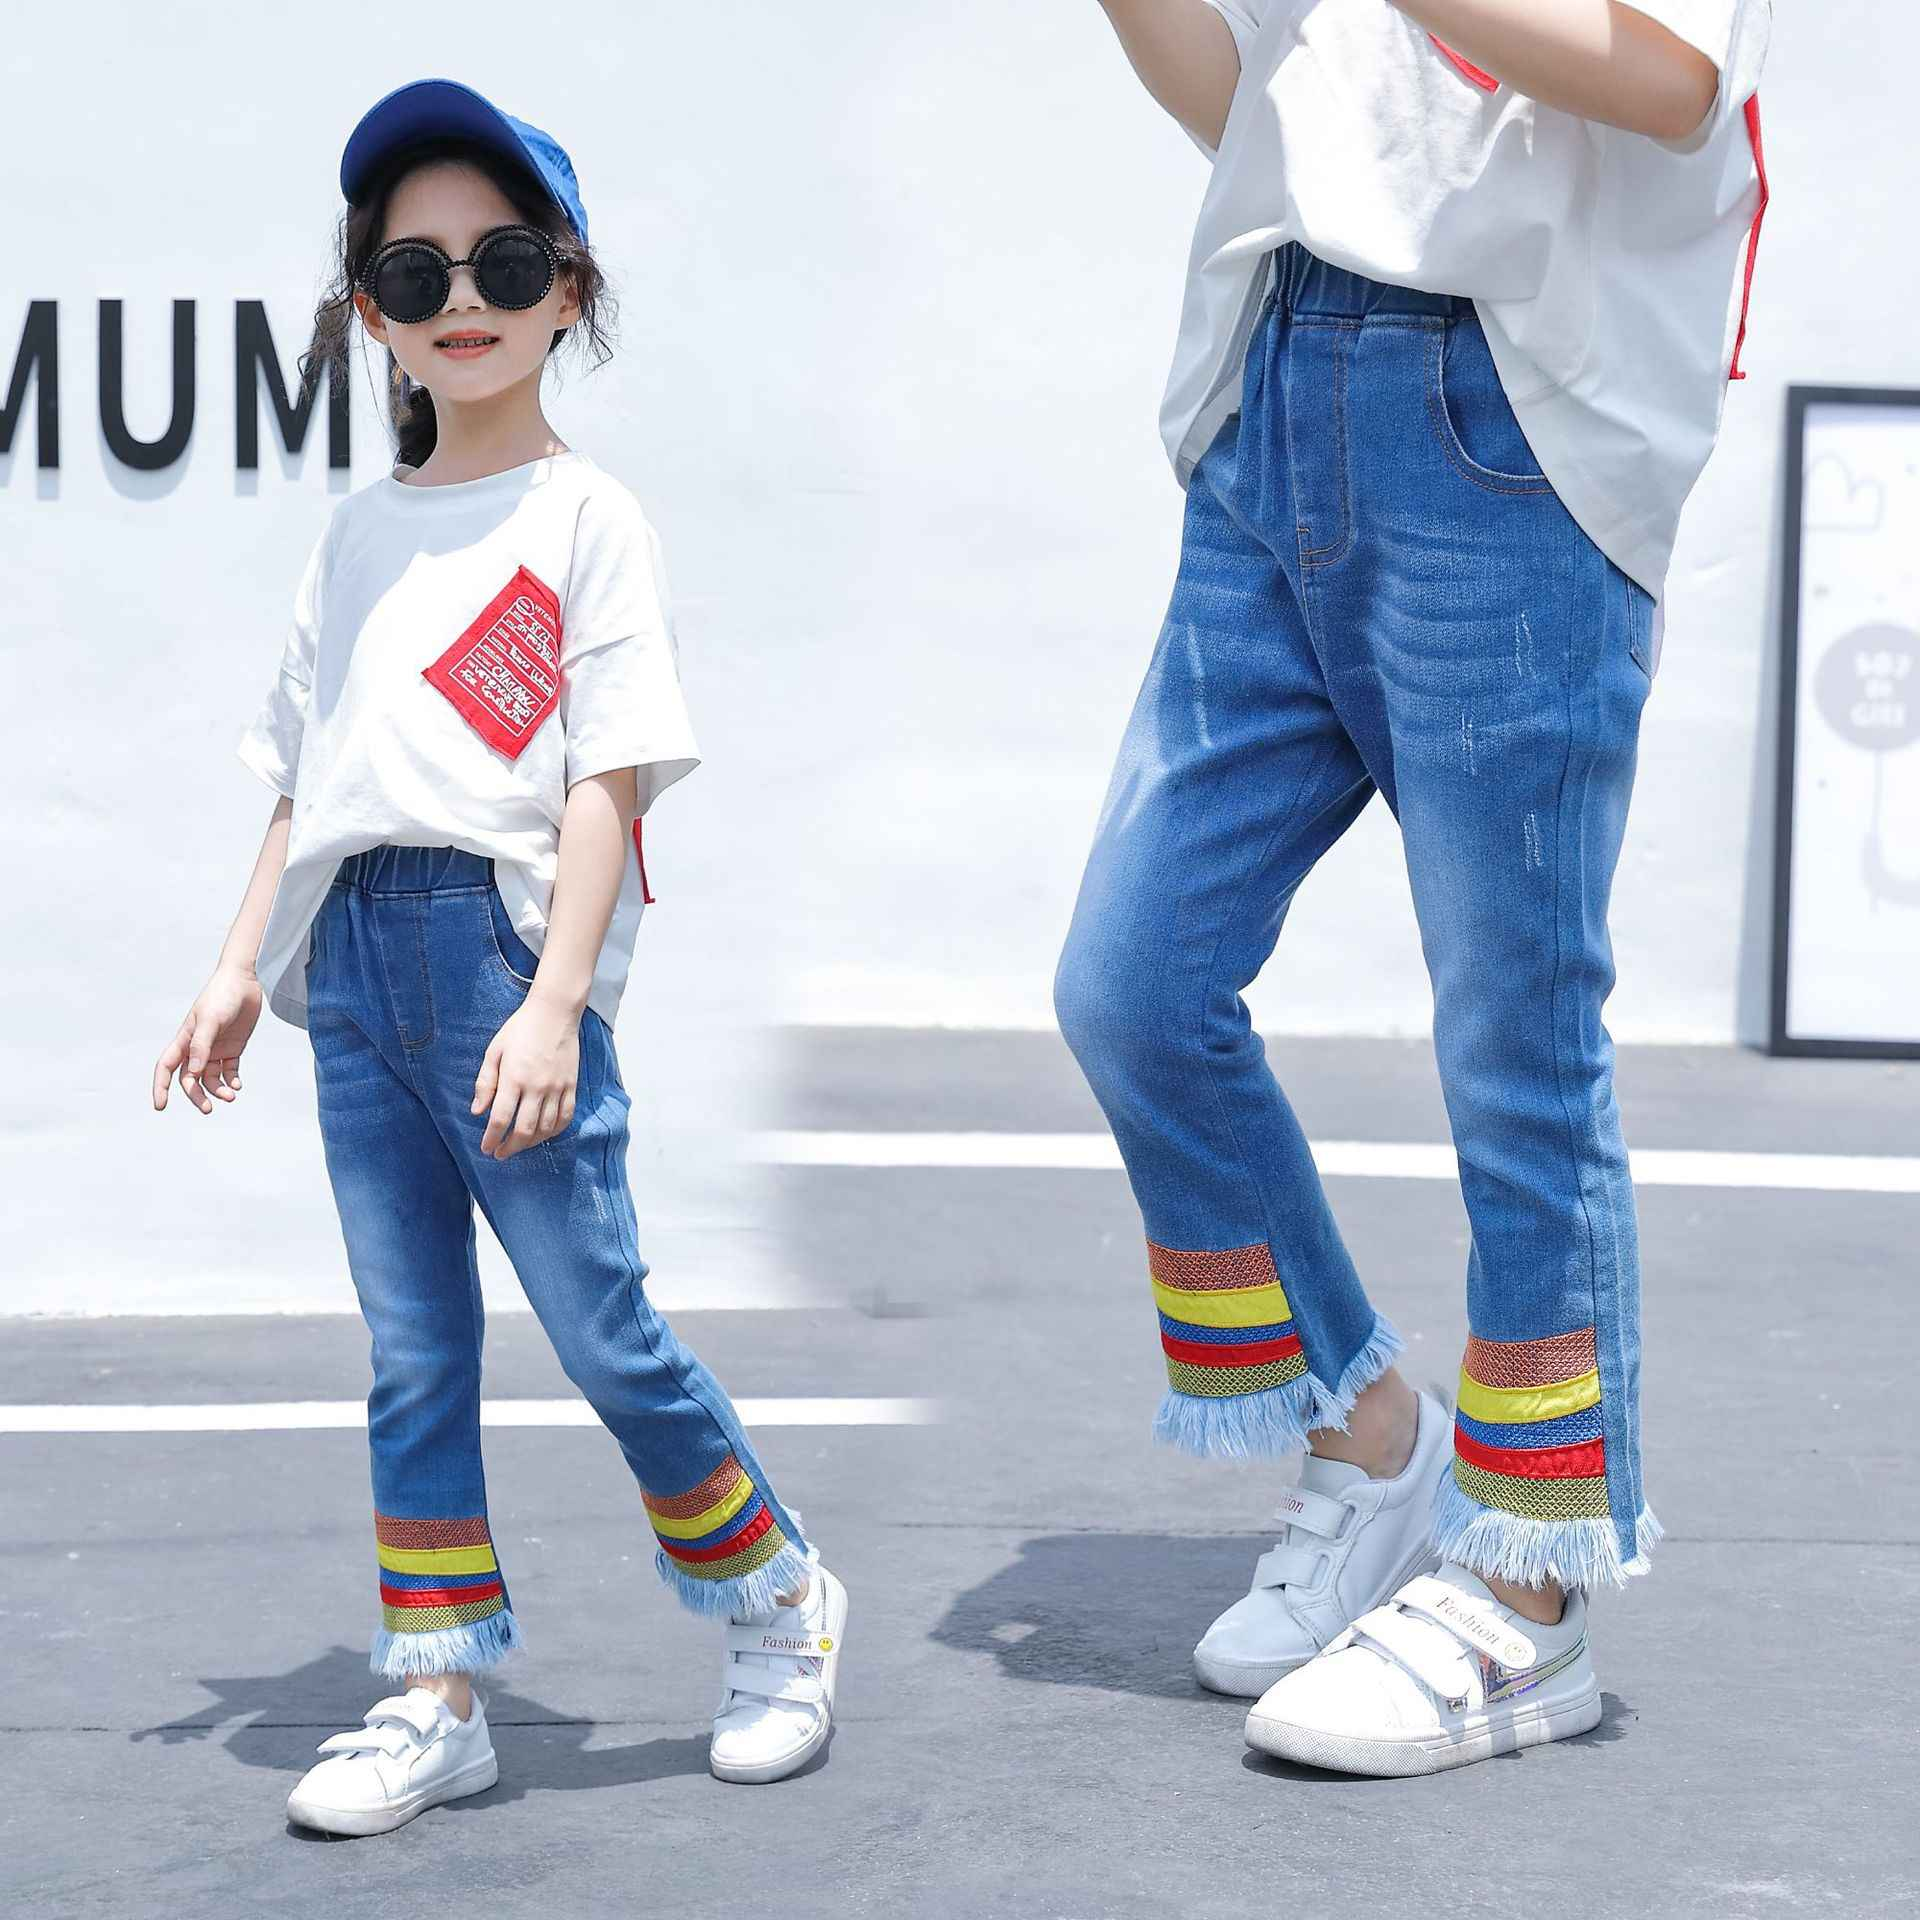 Onegame Teenager Girls Jeans Color stripes Small flared Denim Pants Kids Casual Jeans roupa infantil menina Size 8 9 12 13 years